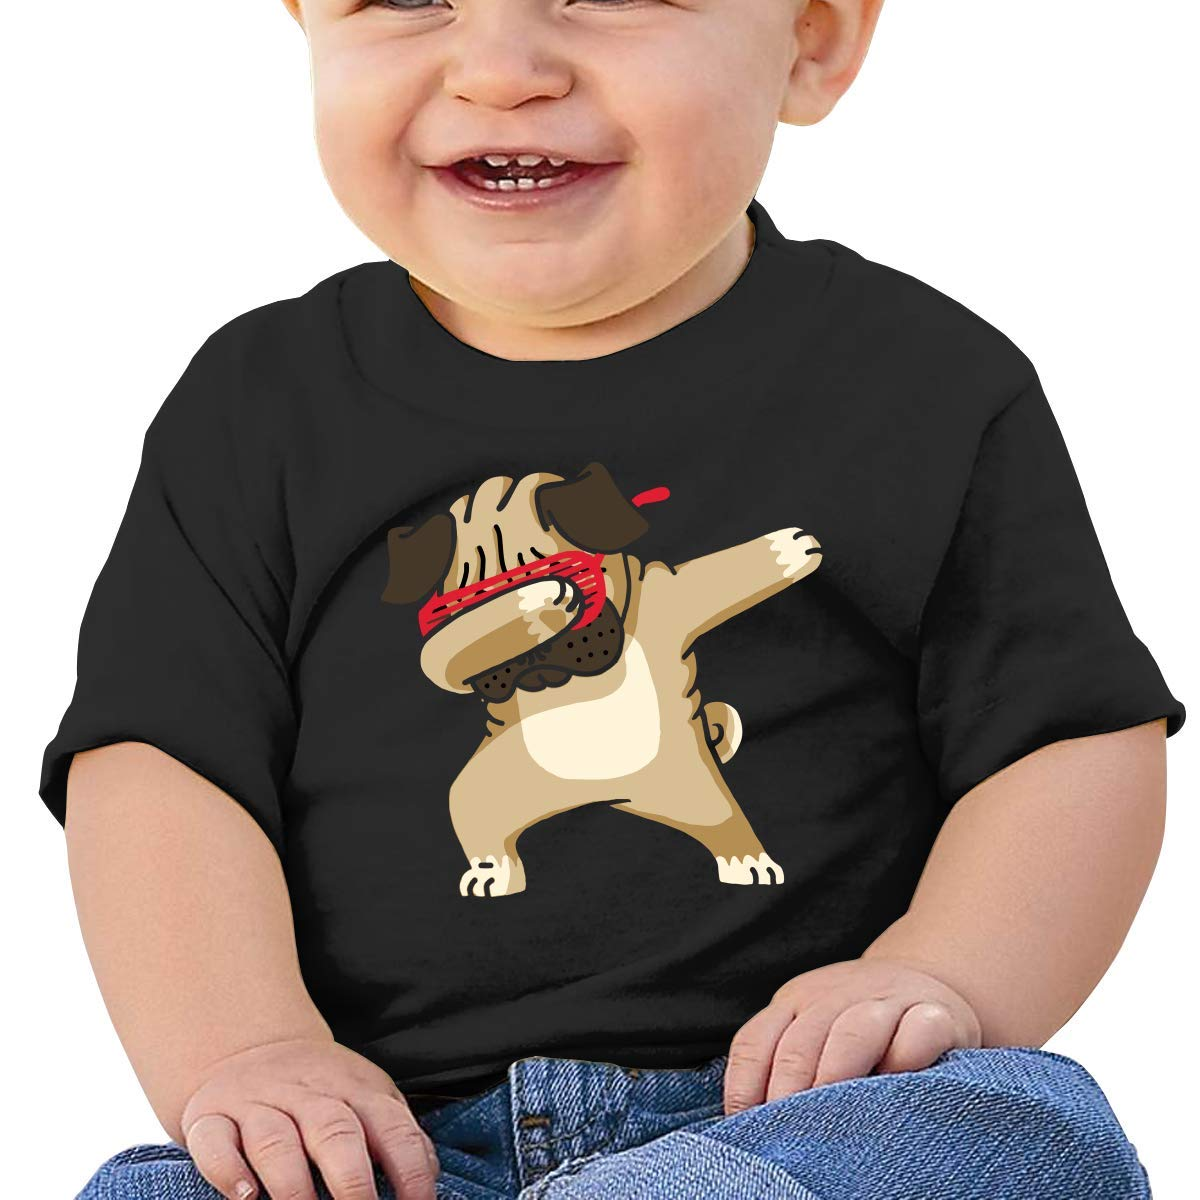 STARKLY Dabbing Pug Hip Hop Boy Girl Newborn Short Sleeve Tee Shirt 6-24 Month 5 Tops